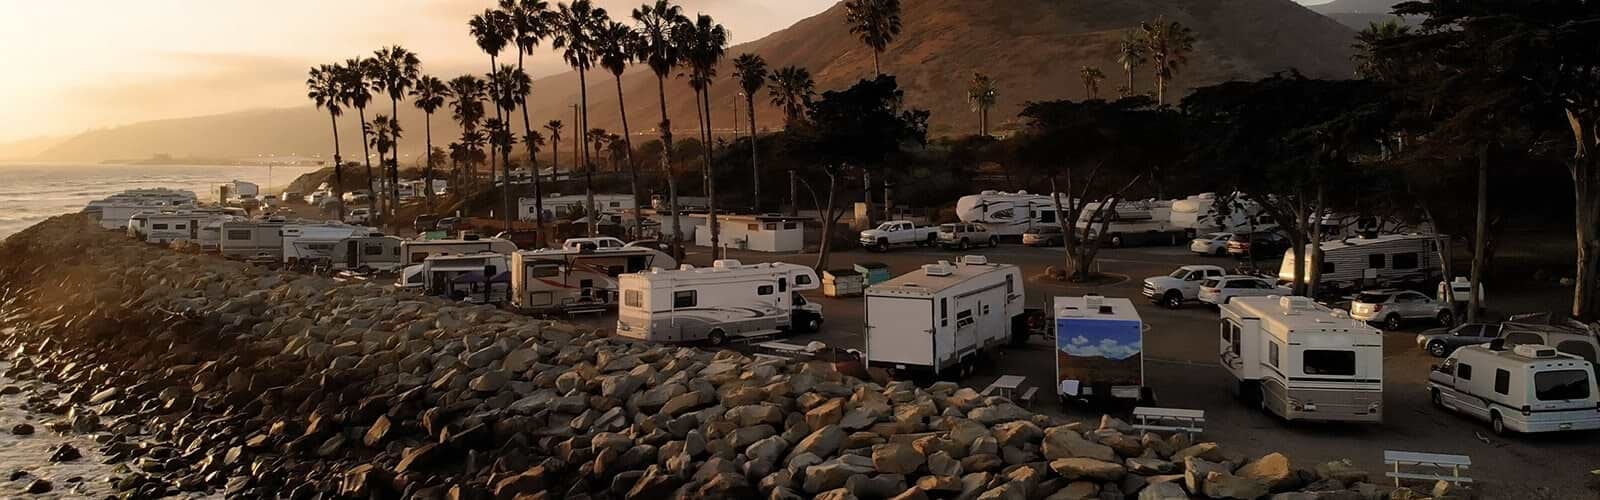 Tips to Find the Best RV Parks